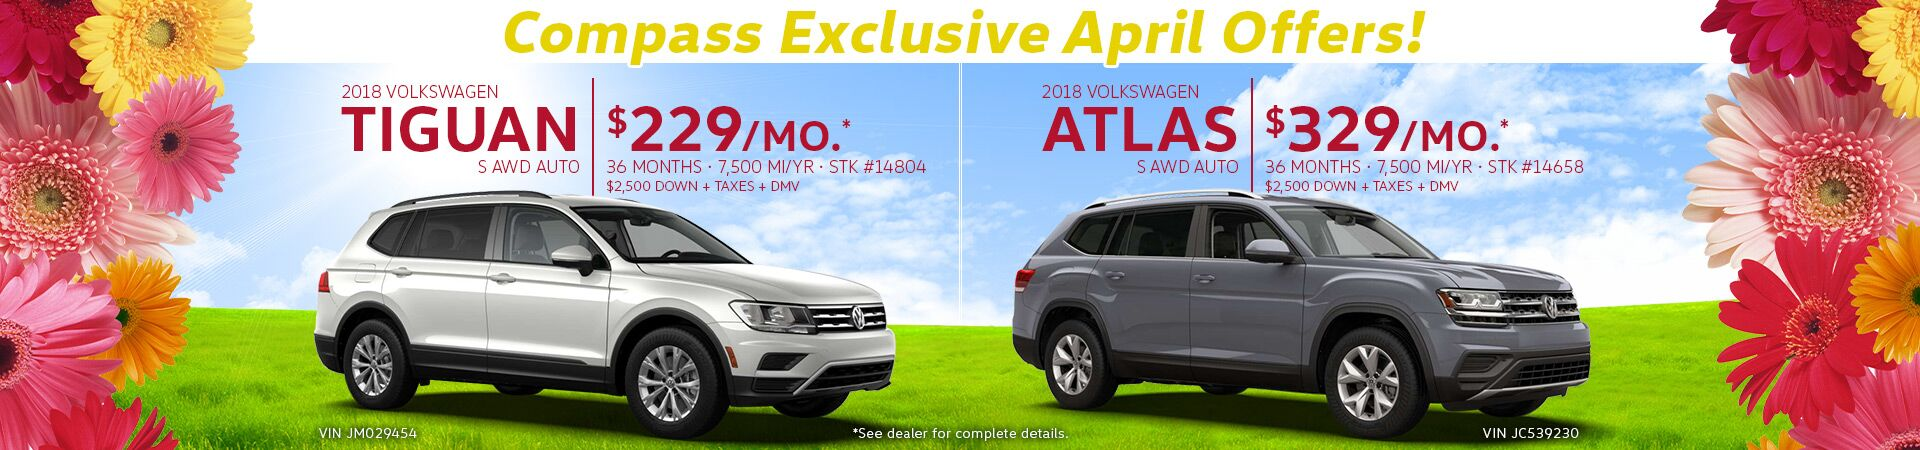 Atlas and Tiguan